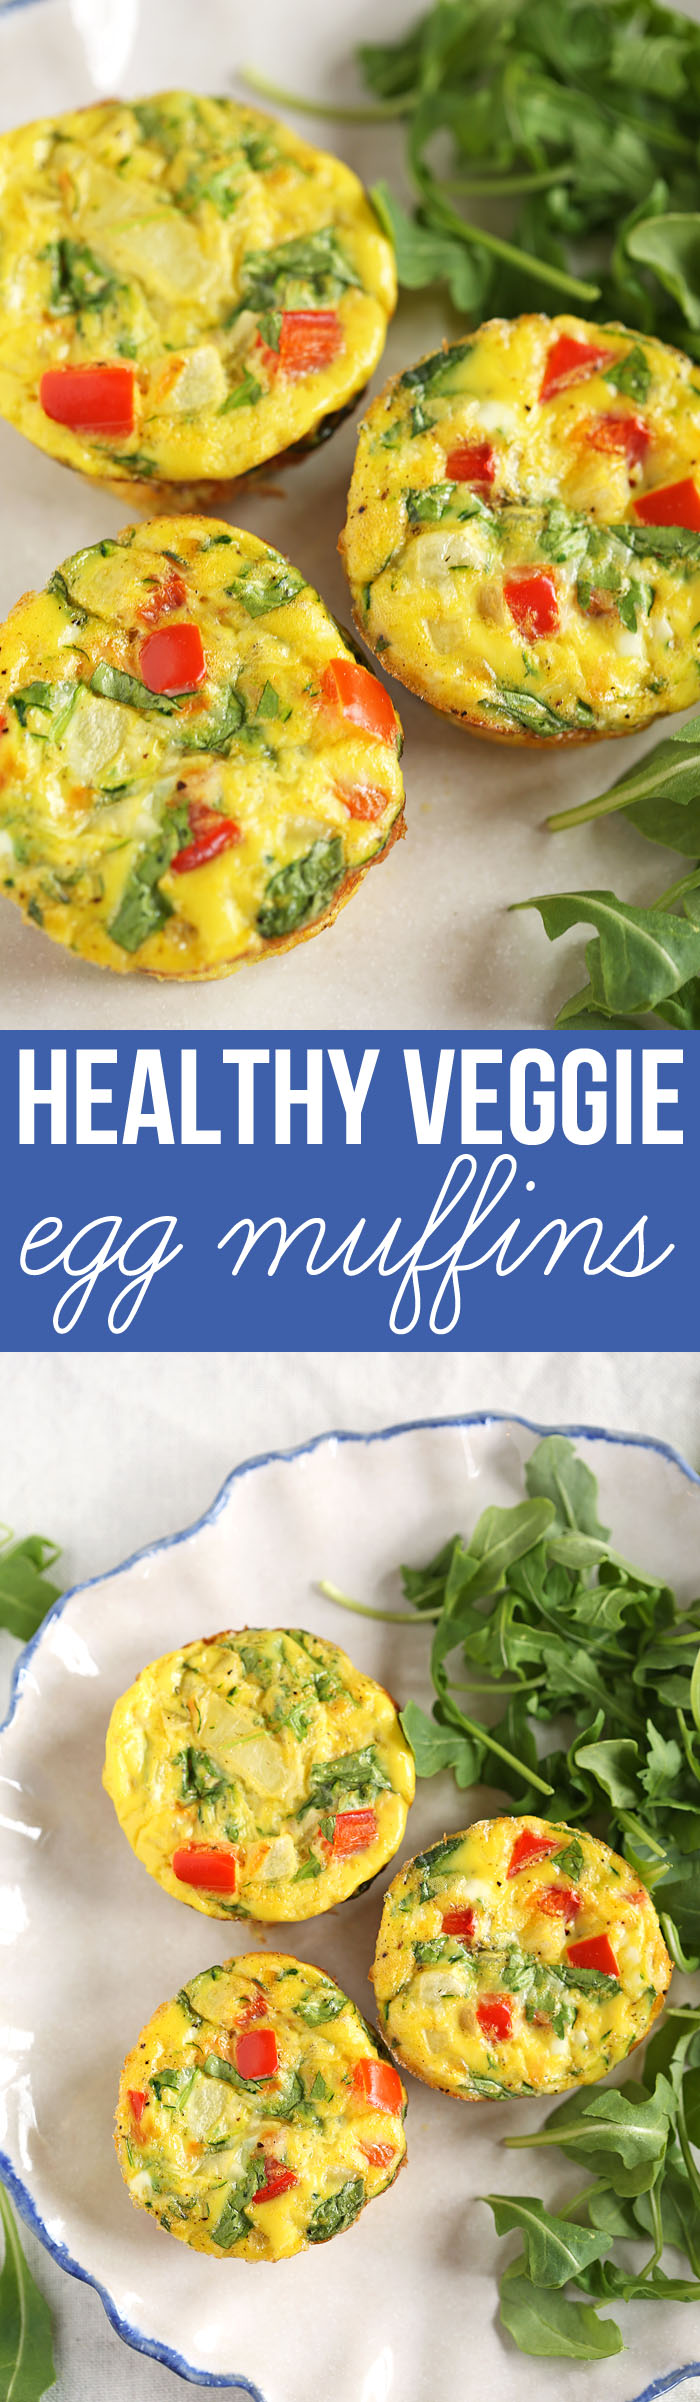 Breakfast Egg Muffins full of delicious veggies that are super easy ...